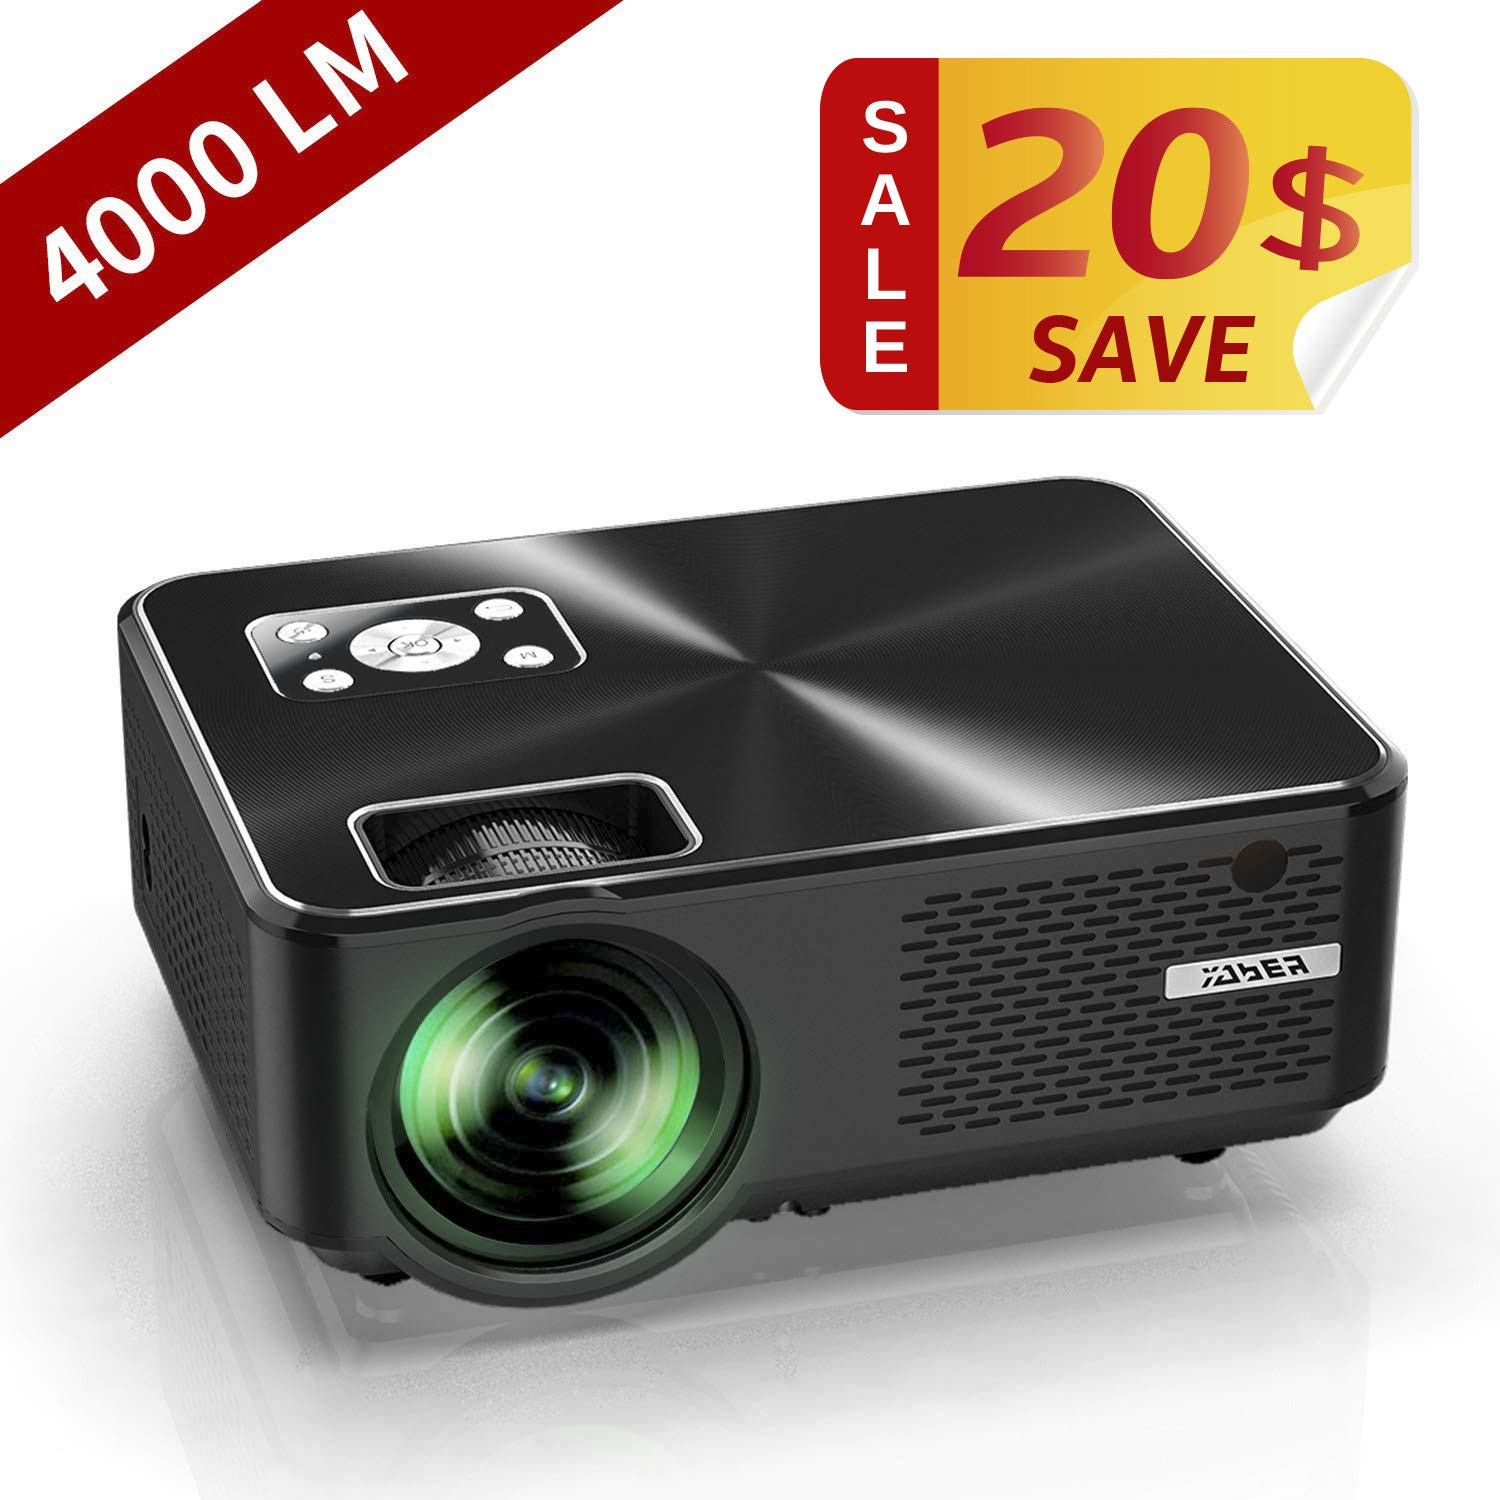 Mini Projector, YABER Portable Projector with 4000 Lumen Full HD 1080P 200'' Display Supported, LCD LED Home & Outdoor Projector Compatible Fire TV Stick, Smartphone, HDMI,VGA,AV and USB